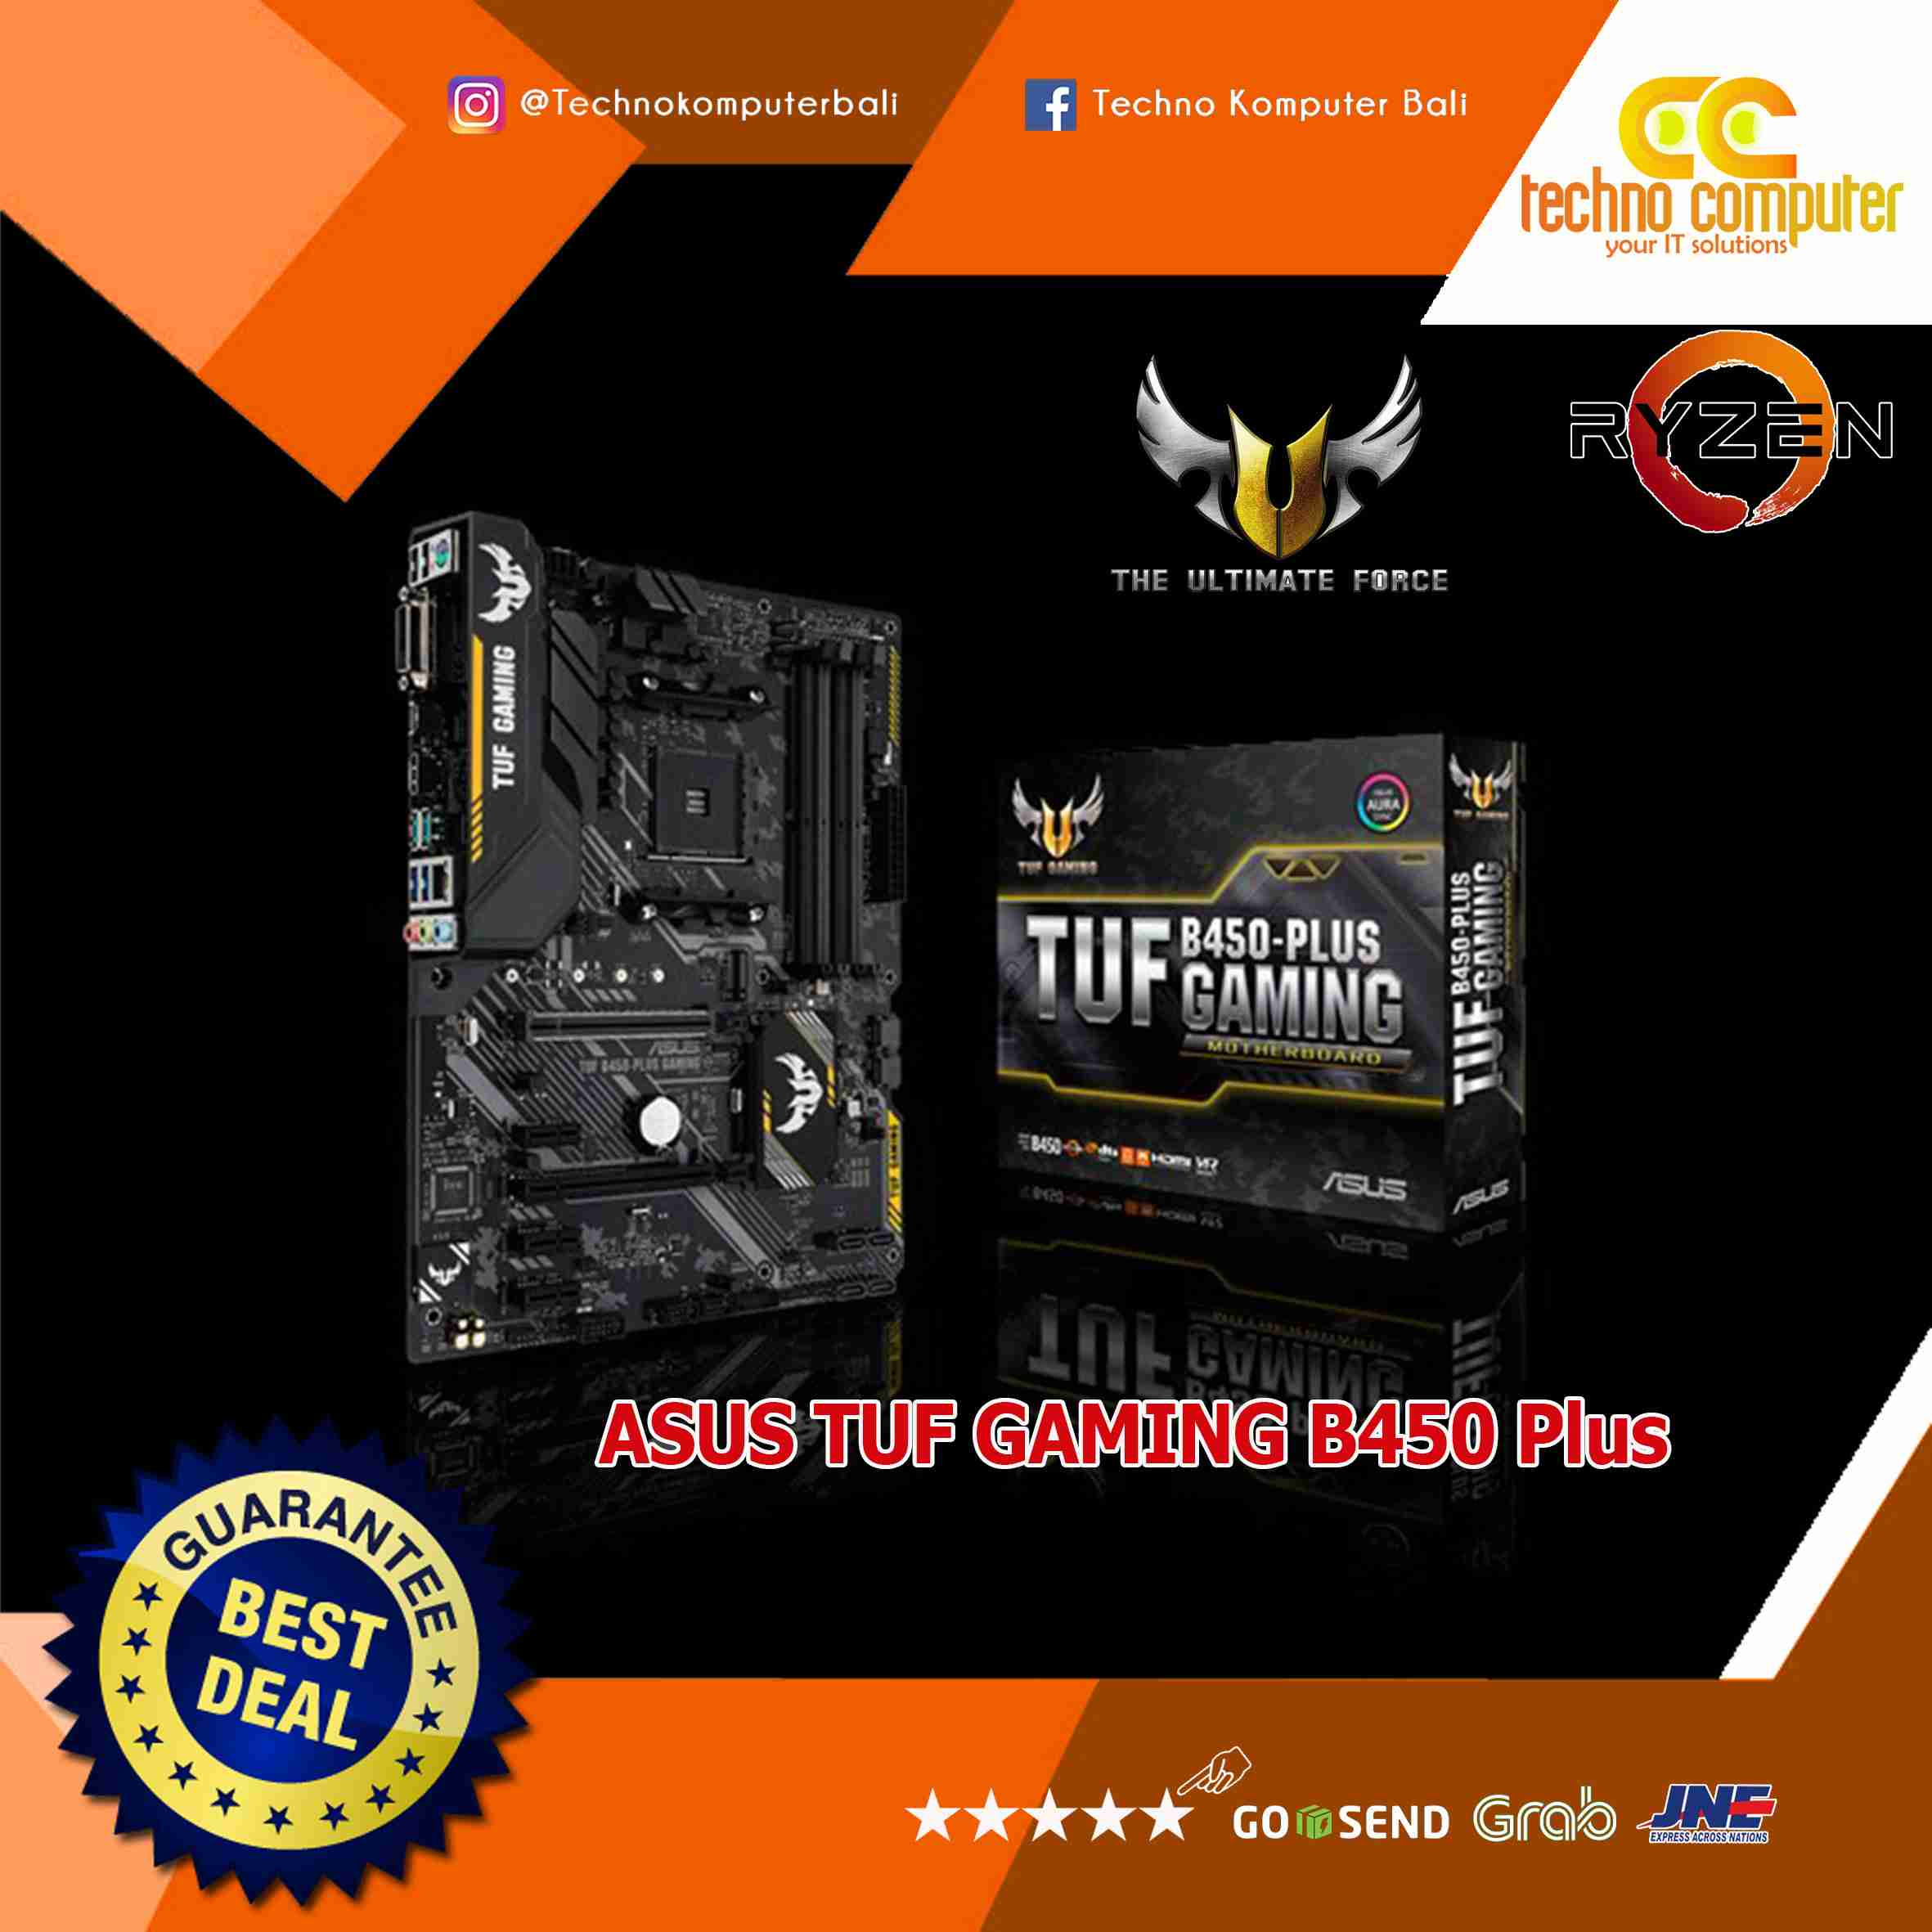 ASUS TUF B450 PLUS GAMING - AMD AM4